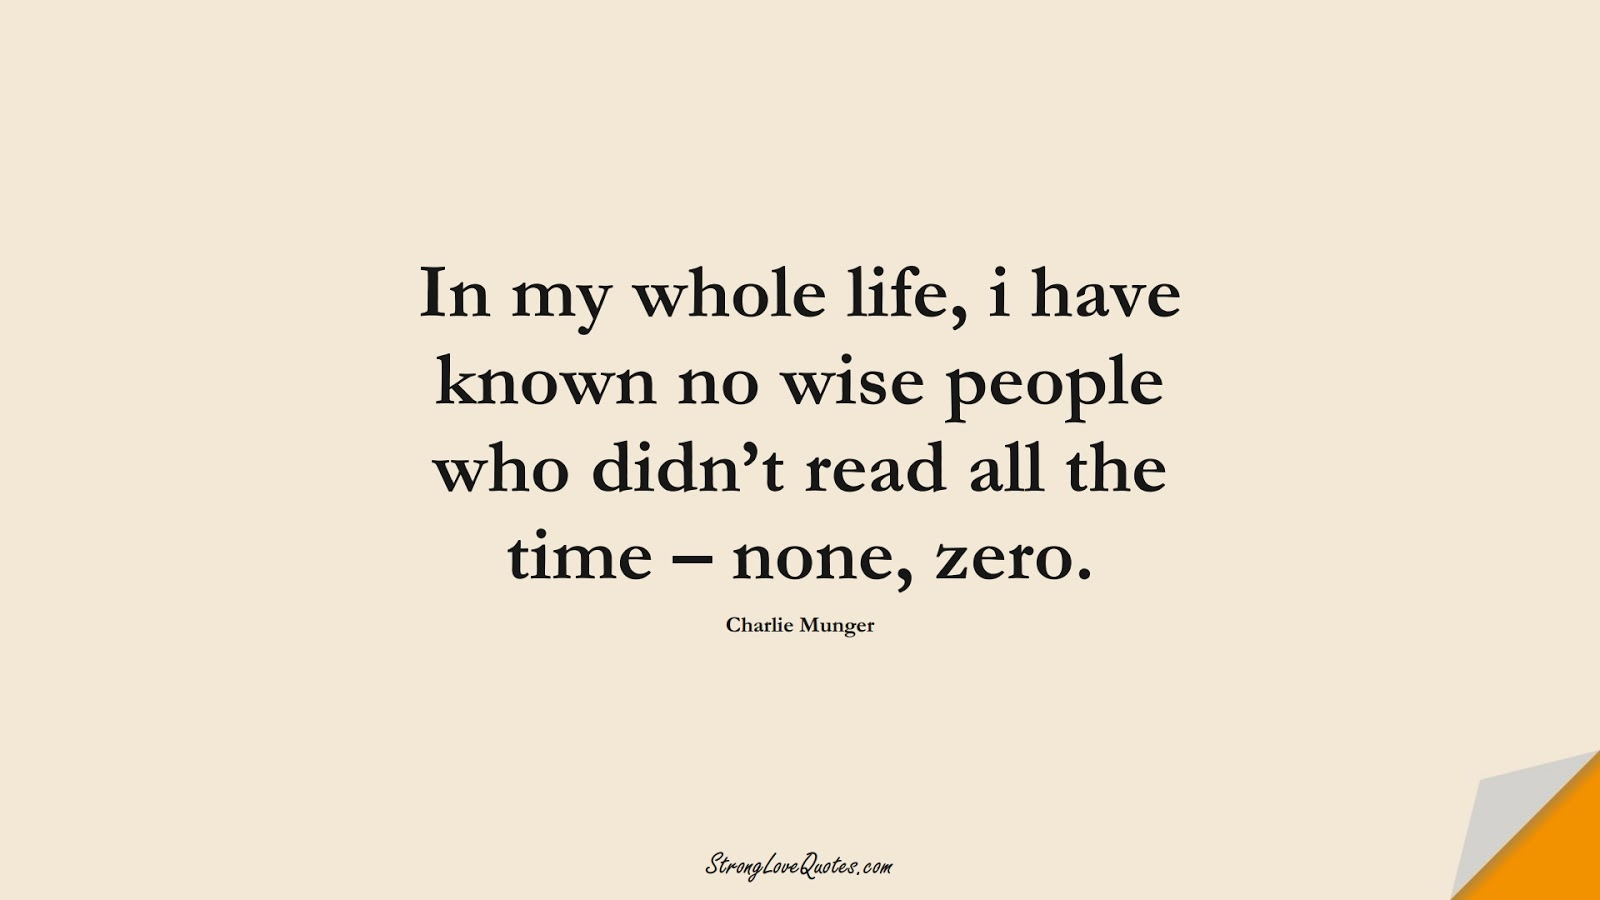 In my whole life, i have known no wise people who didn't read all the time – none, zero. (Charlie Munger);  #KnowledgeQuotes